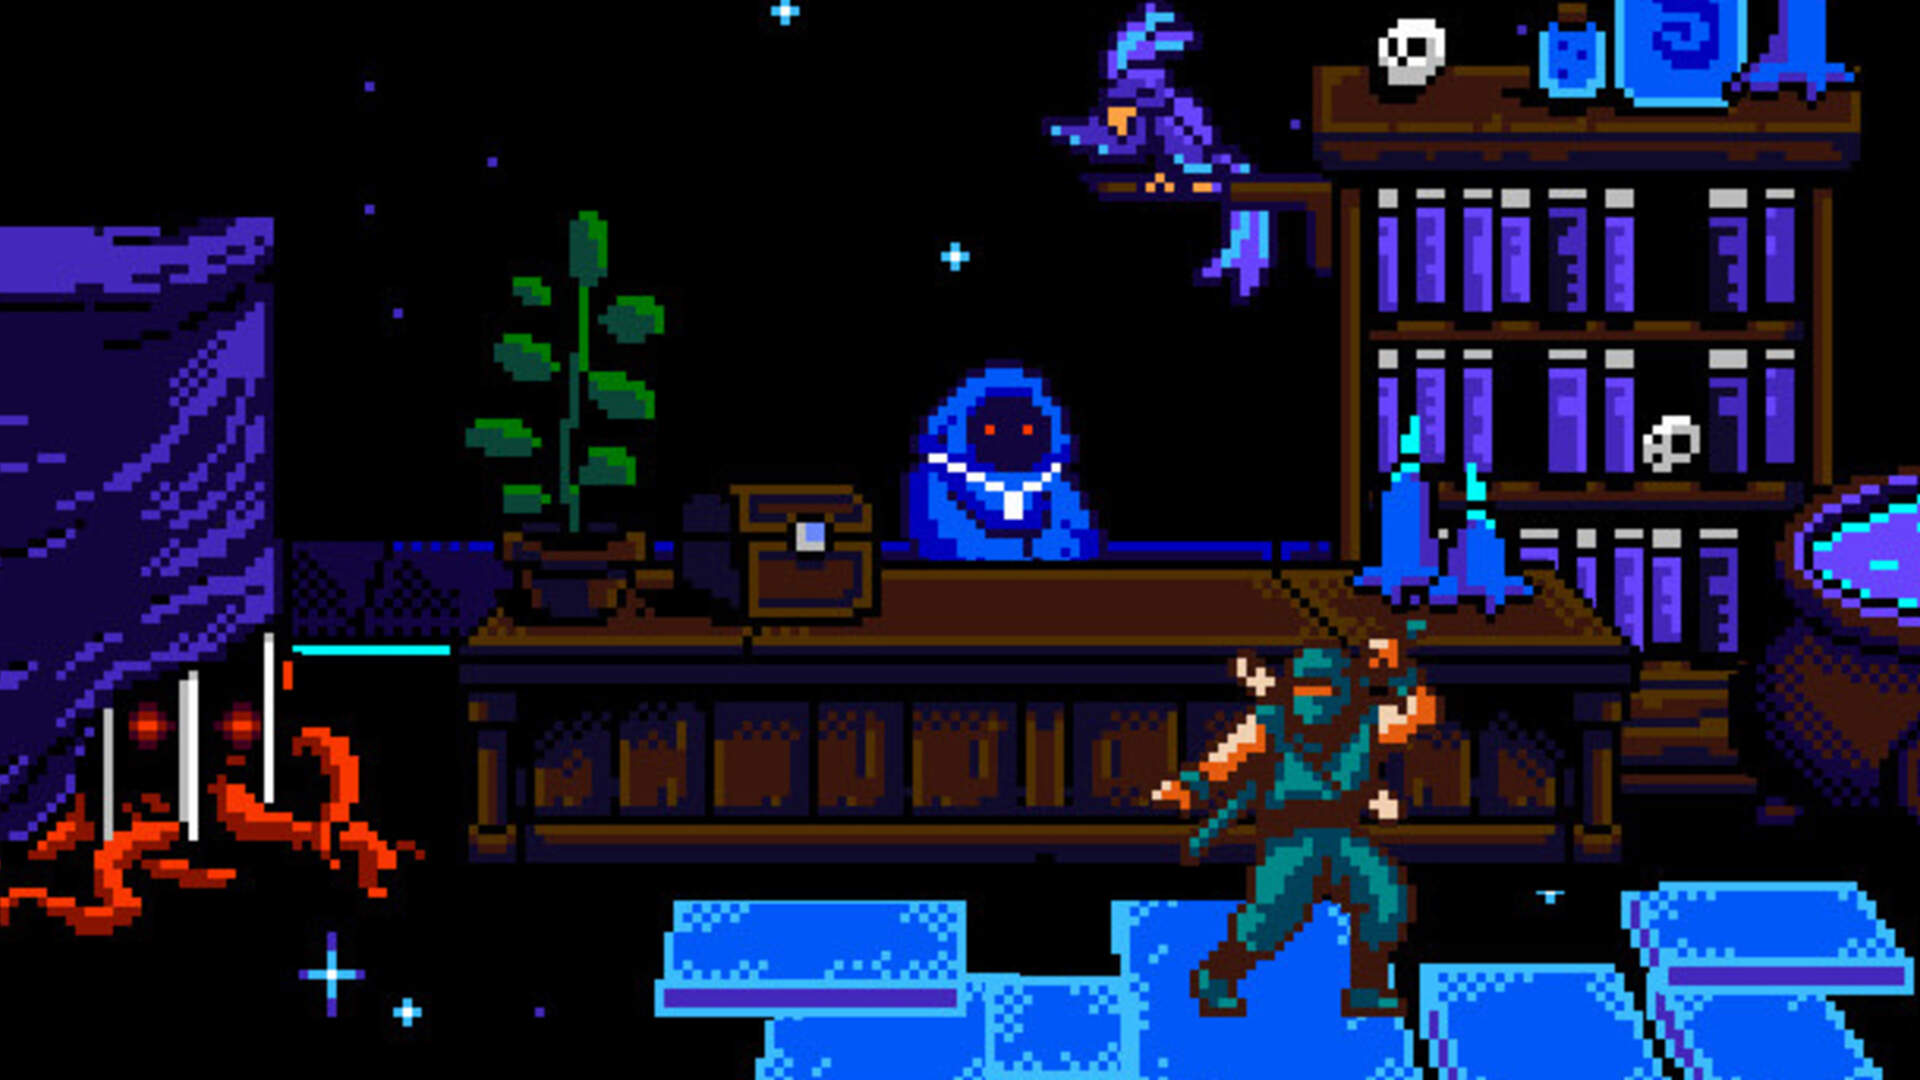 The Messenger Is Going on a Tropical Vacation With Its Free DLC Expansion in 2019